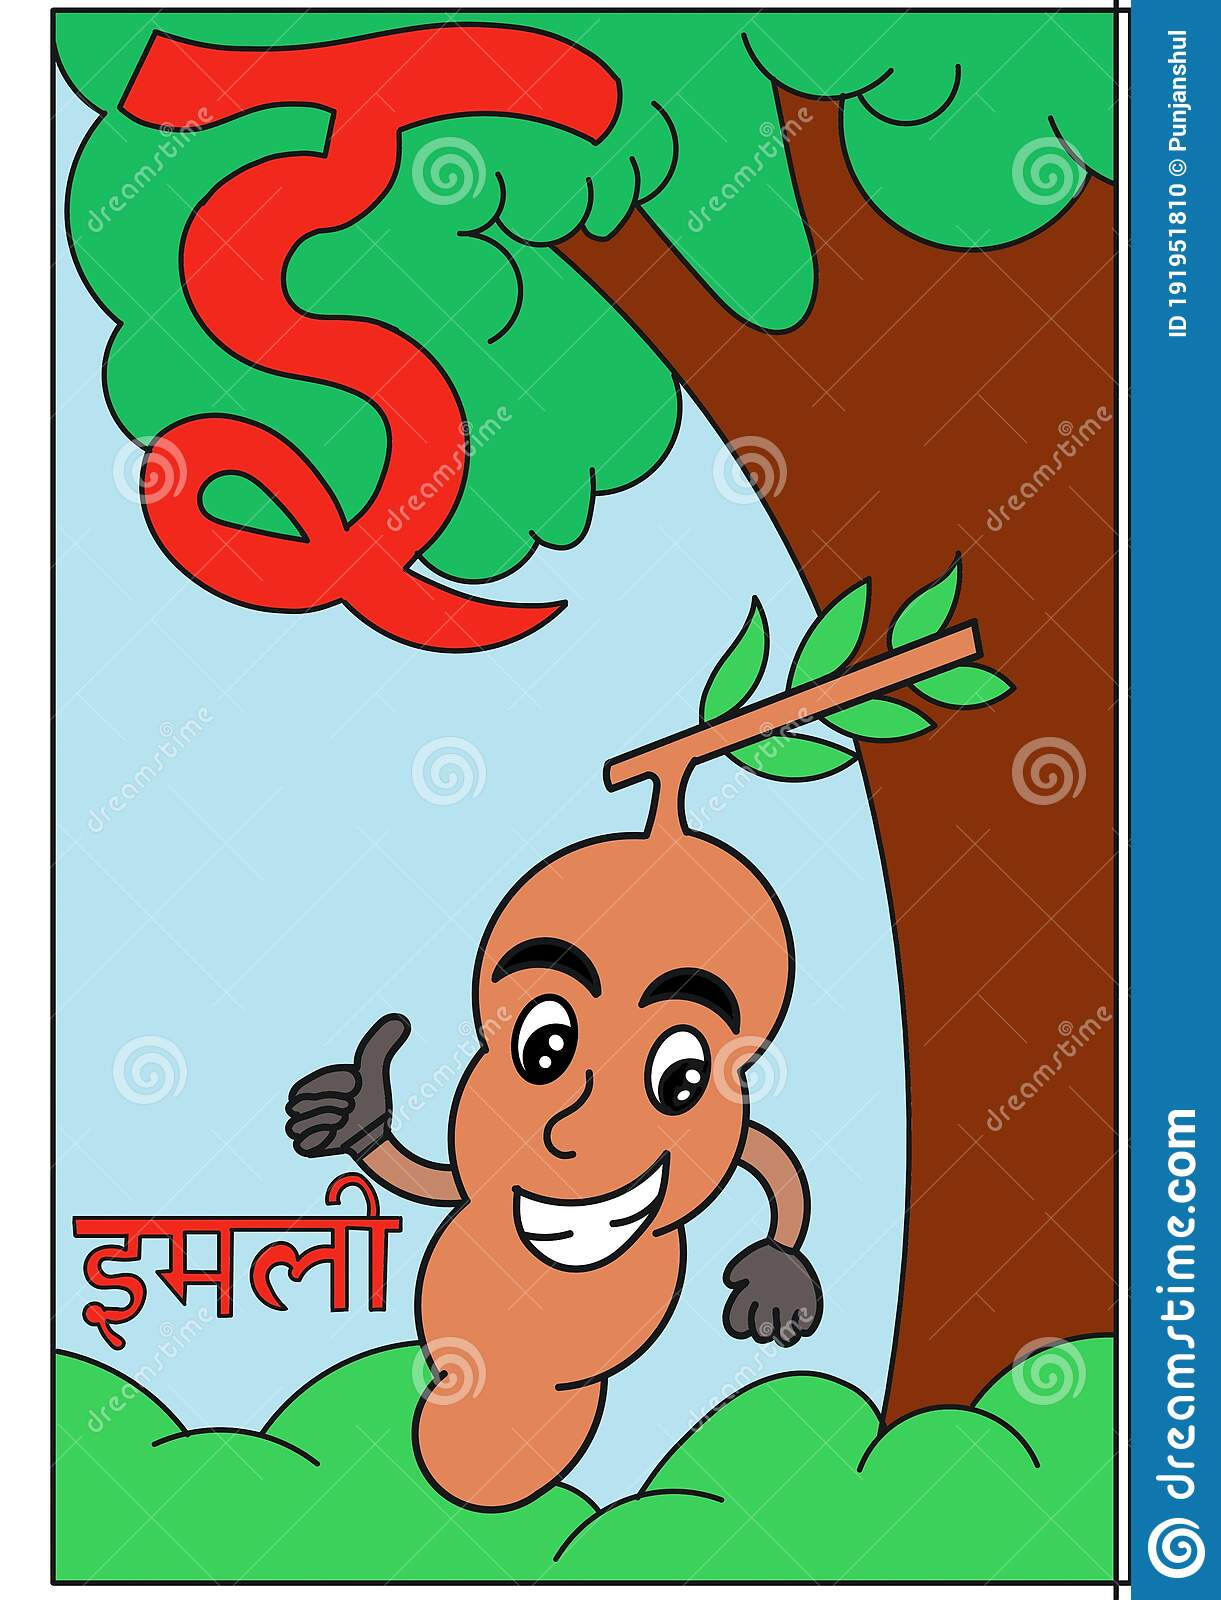 Learn Hindi Language Alphabets For Kindergarten Preschool And Beginners Letter Vowel That Sound E Tarmarind Cute Cartoon Pic Stock Illustration Illustration Of Learn Language 191951810